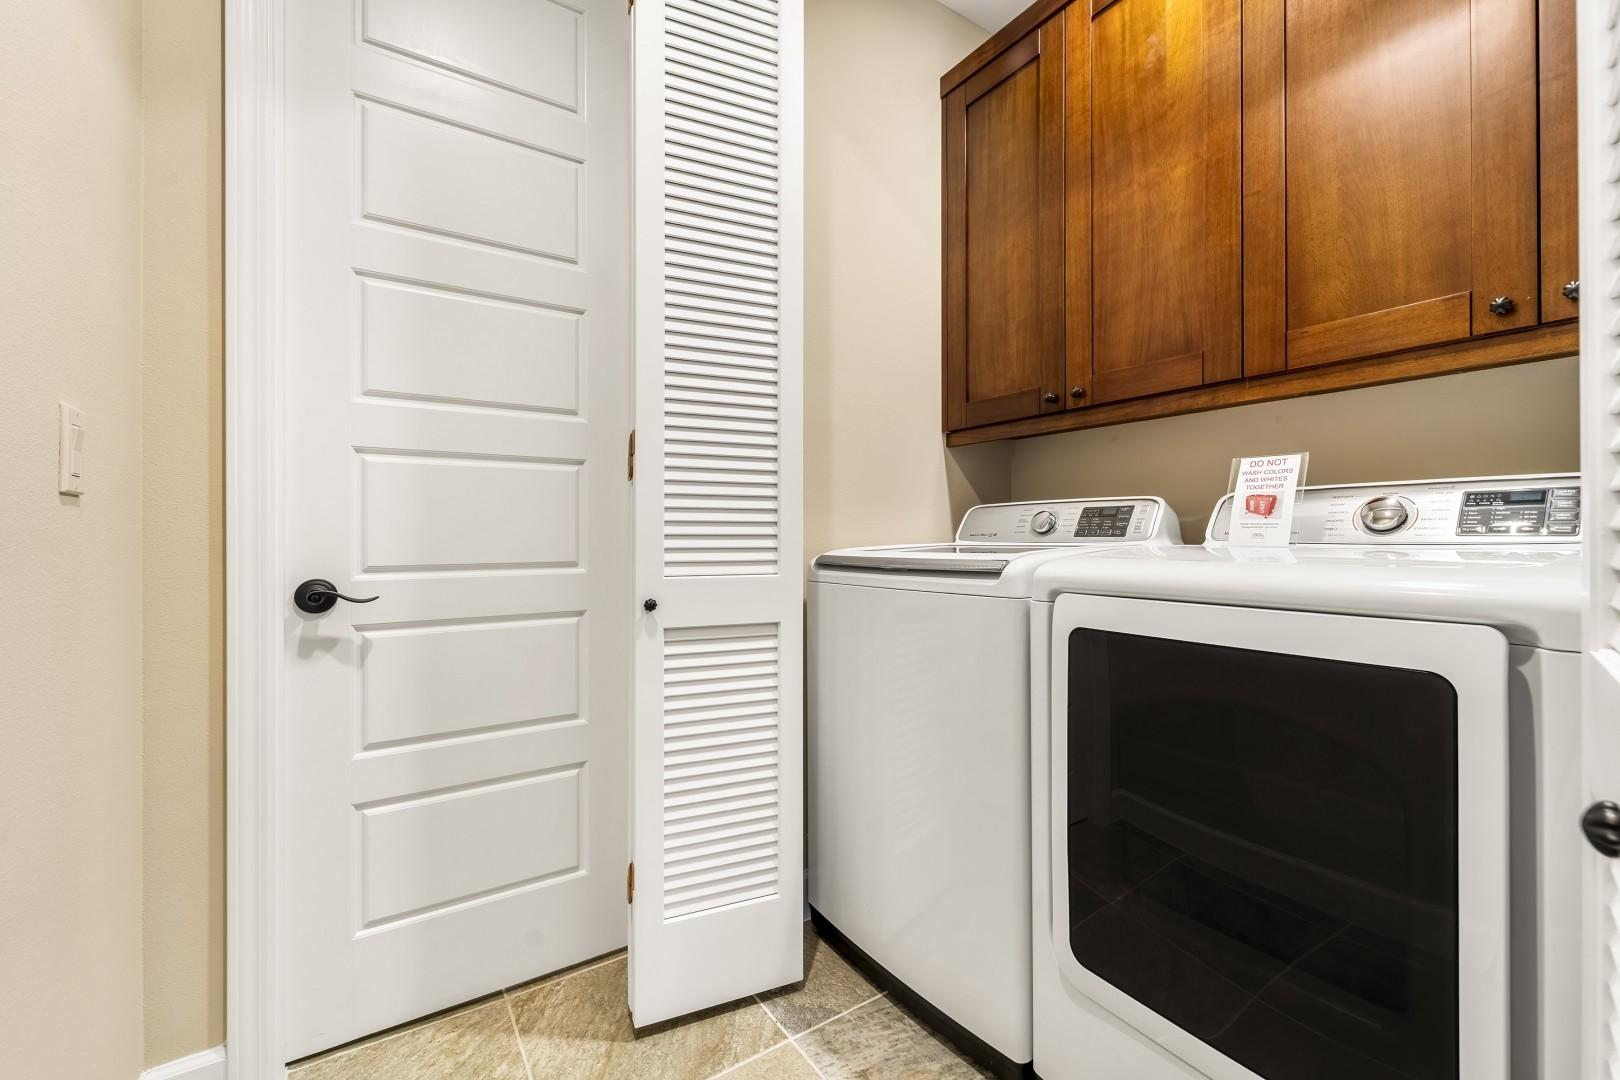 Full sized laundry in the home